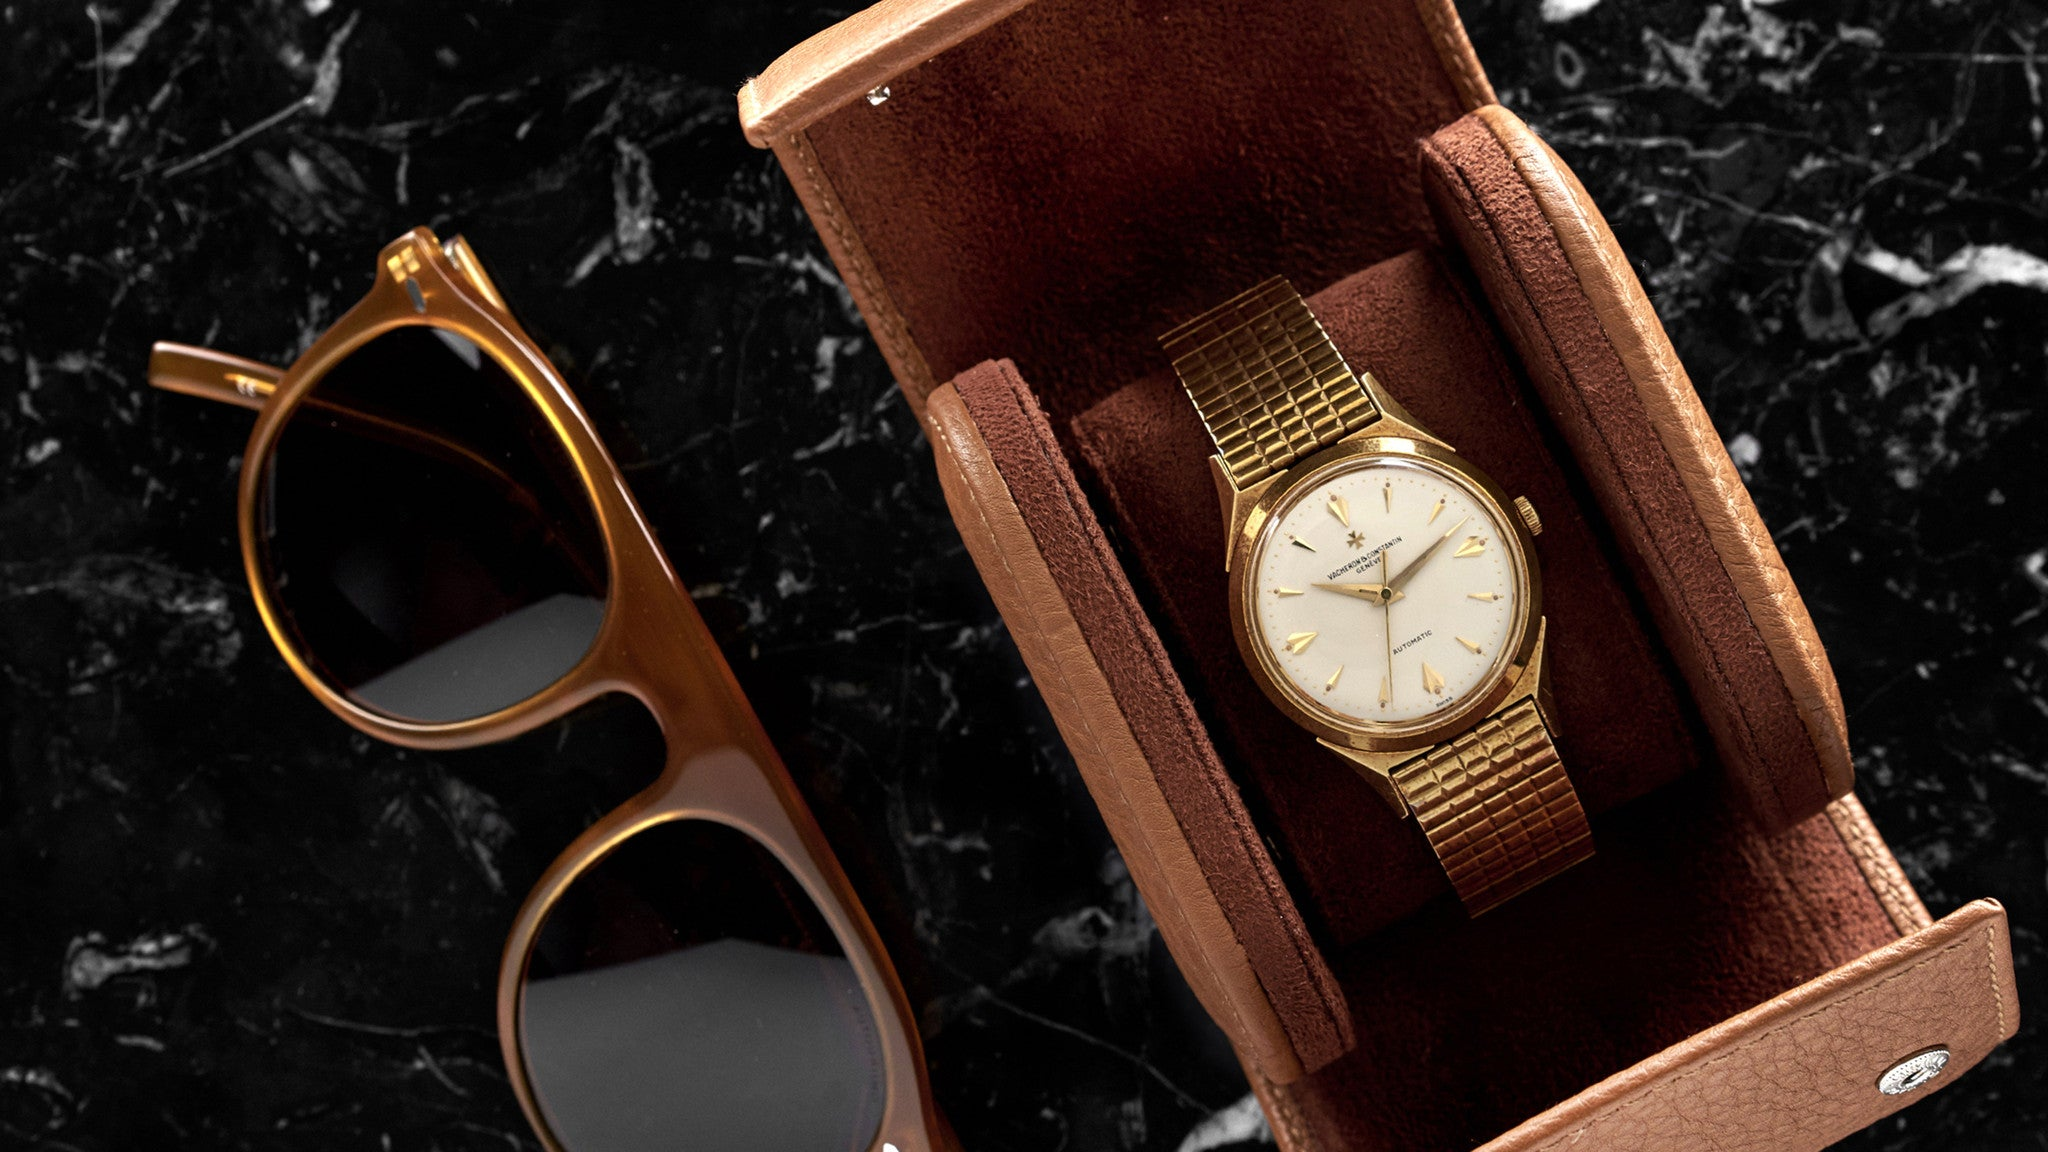 The dress journal of vision - 1959 Vacheron Constantin Dress Watch Reference 6073 With Bracelet